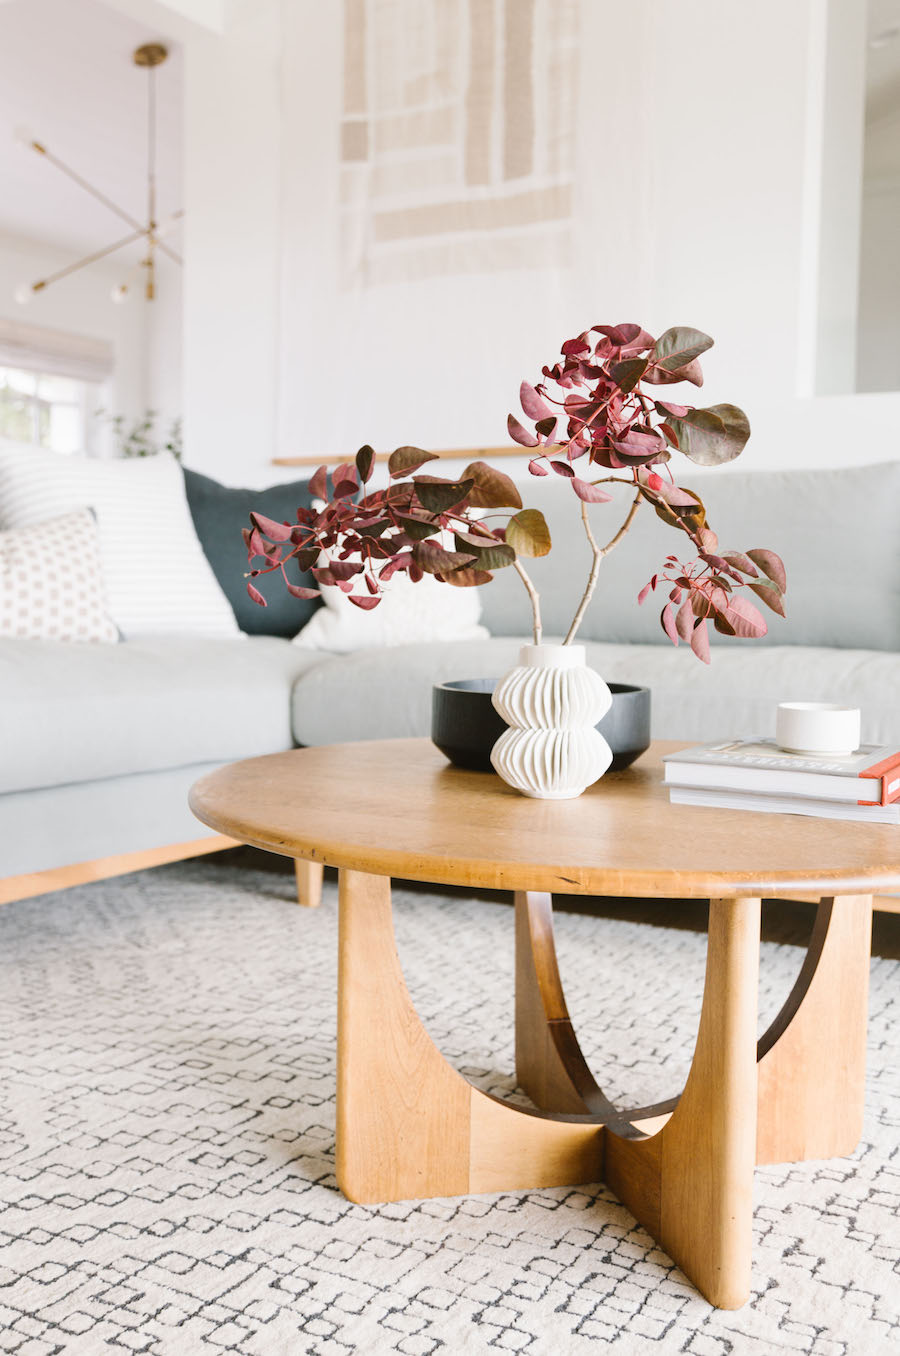 Wood Coffee Table With Grey Scandinavian Minimal Couch